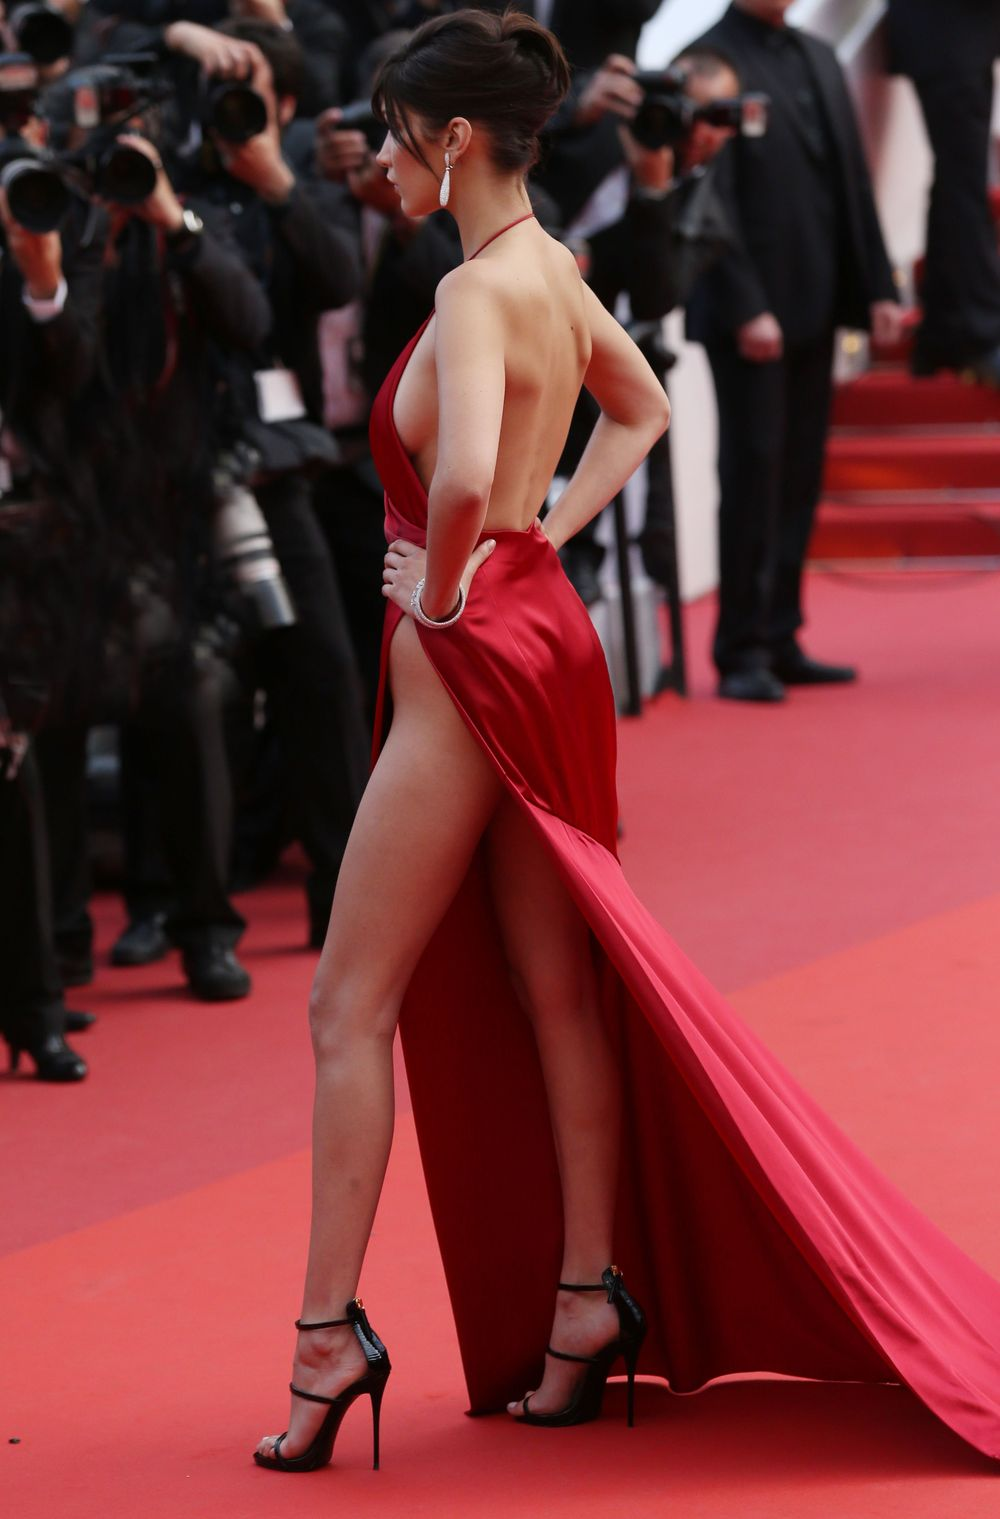 Mandatory Credit: Photo by James Gourley/REX/Shutterstock (5689201ay) Bella Hadid 'The Unknown Girl' premiere, 69th Cannes Film Festival, France - 18 May 2016